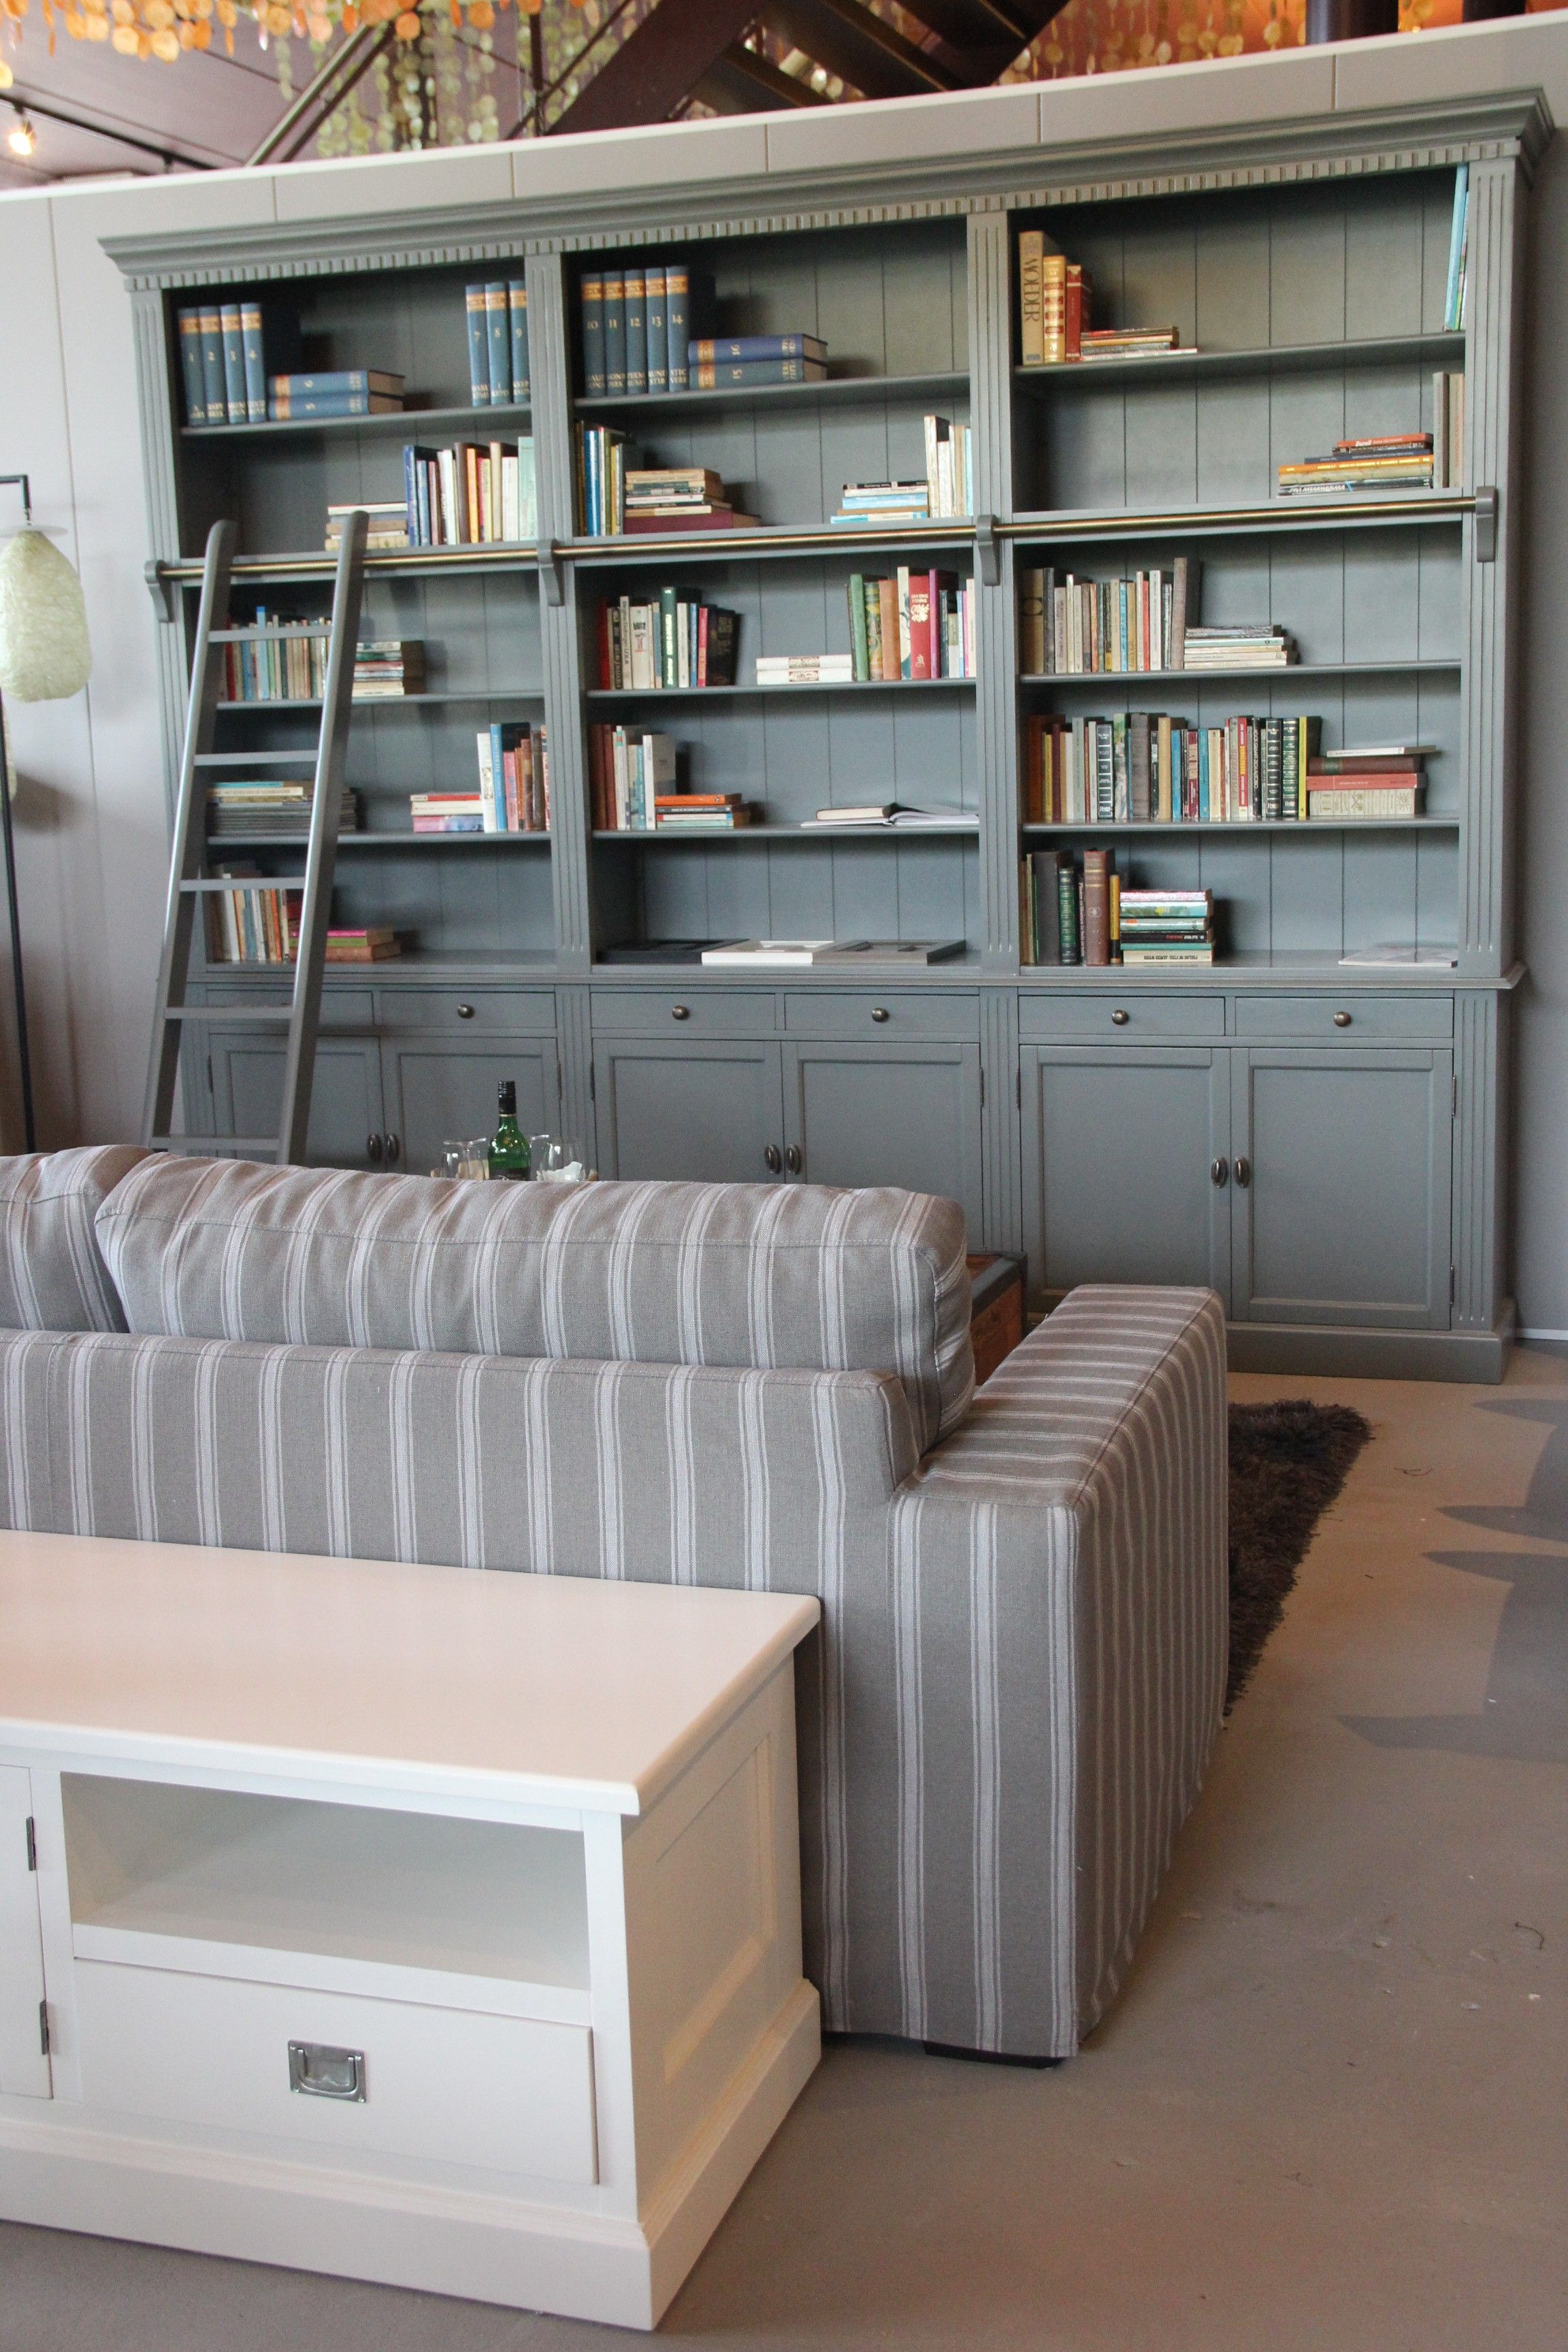 Private Library | Boekenkast met ladder - Kasten € 1395,- voor 3 ...